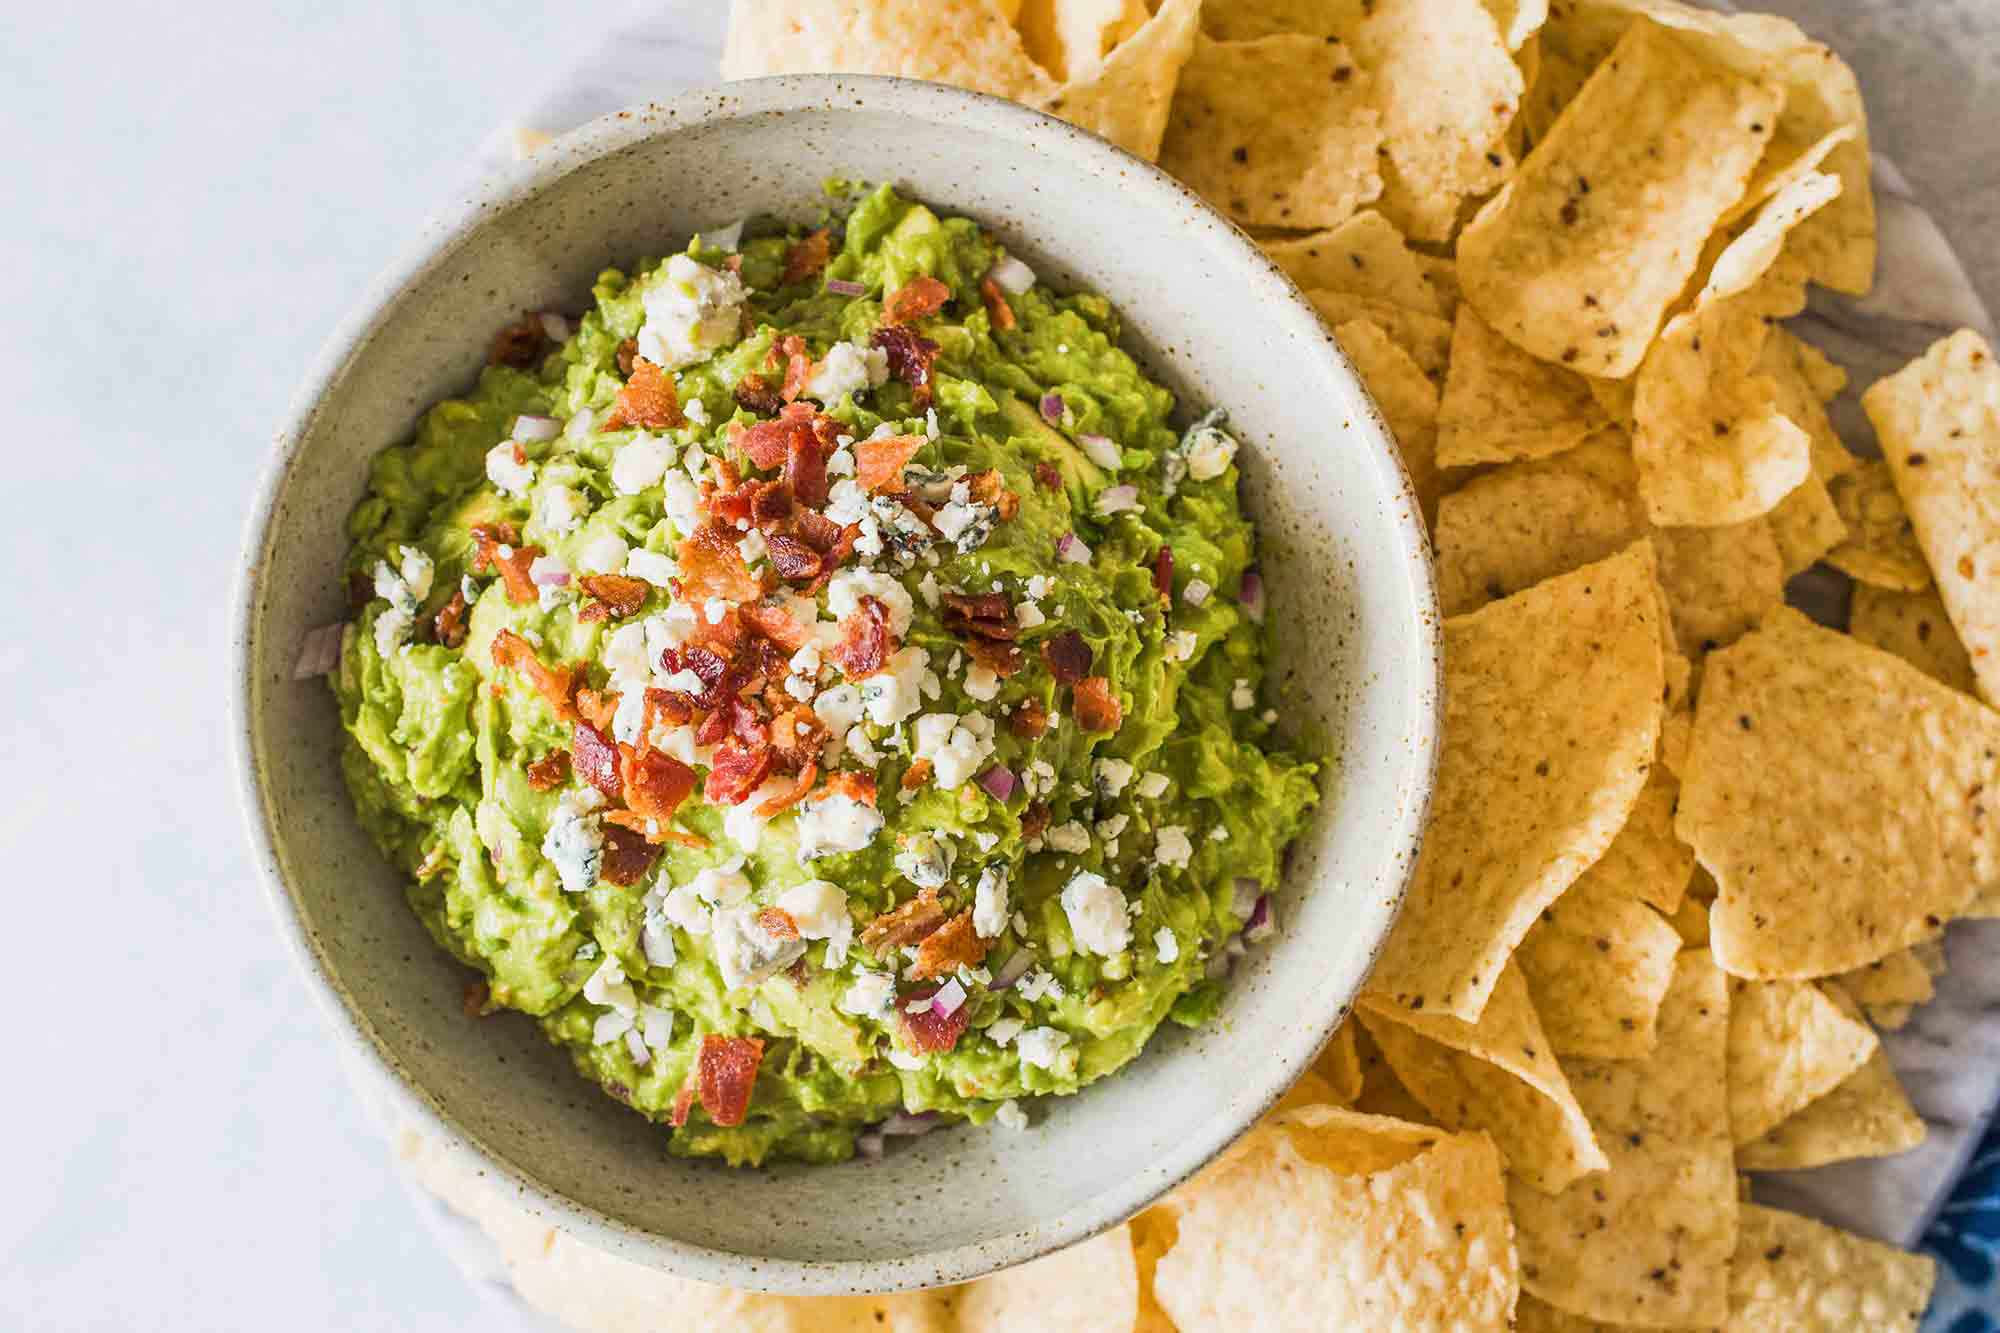 Guacamole Recipe with Bacon - guacamole with bacon and chips